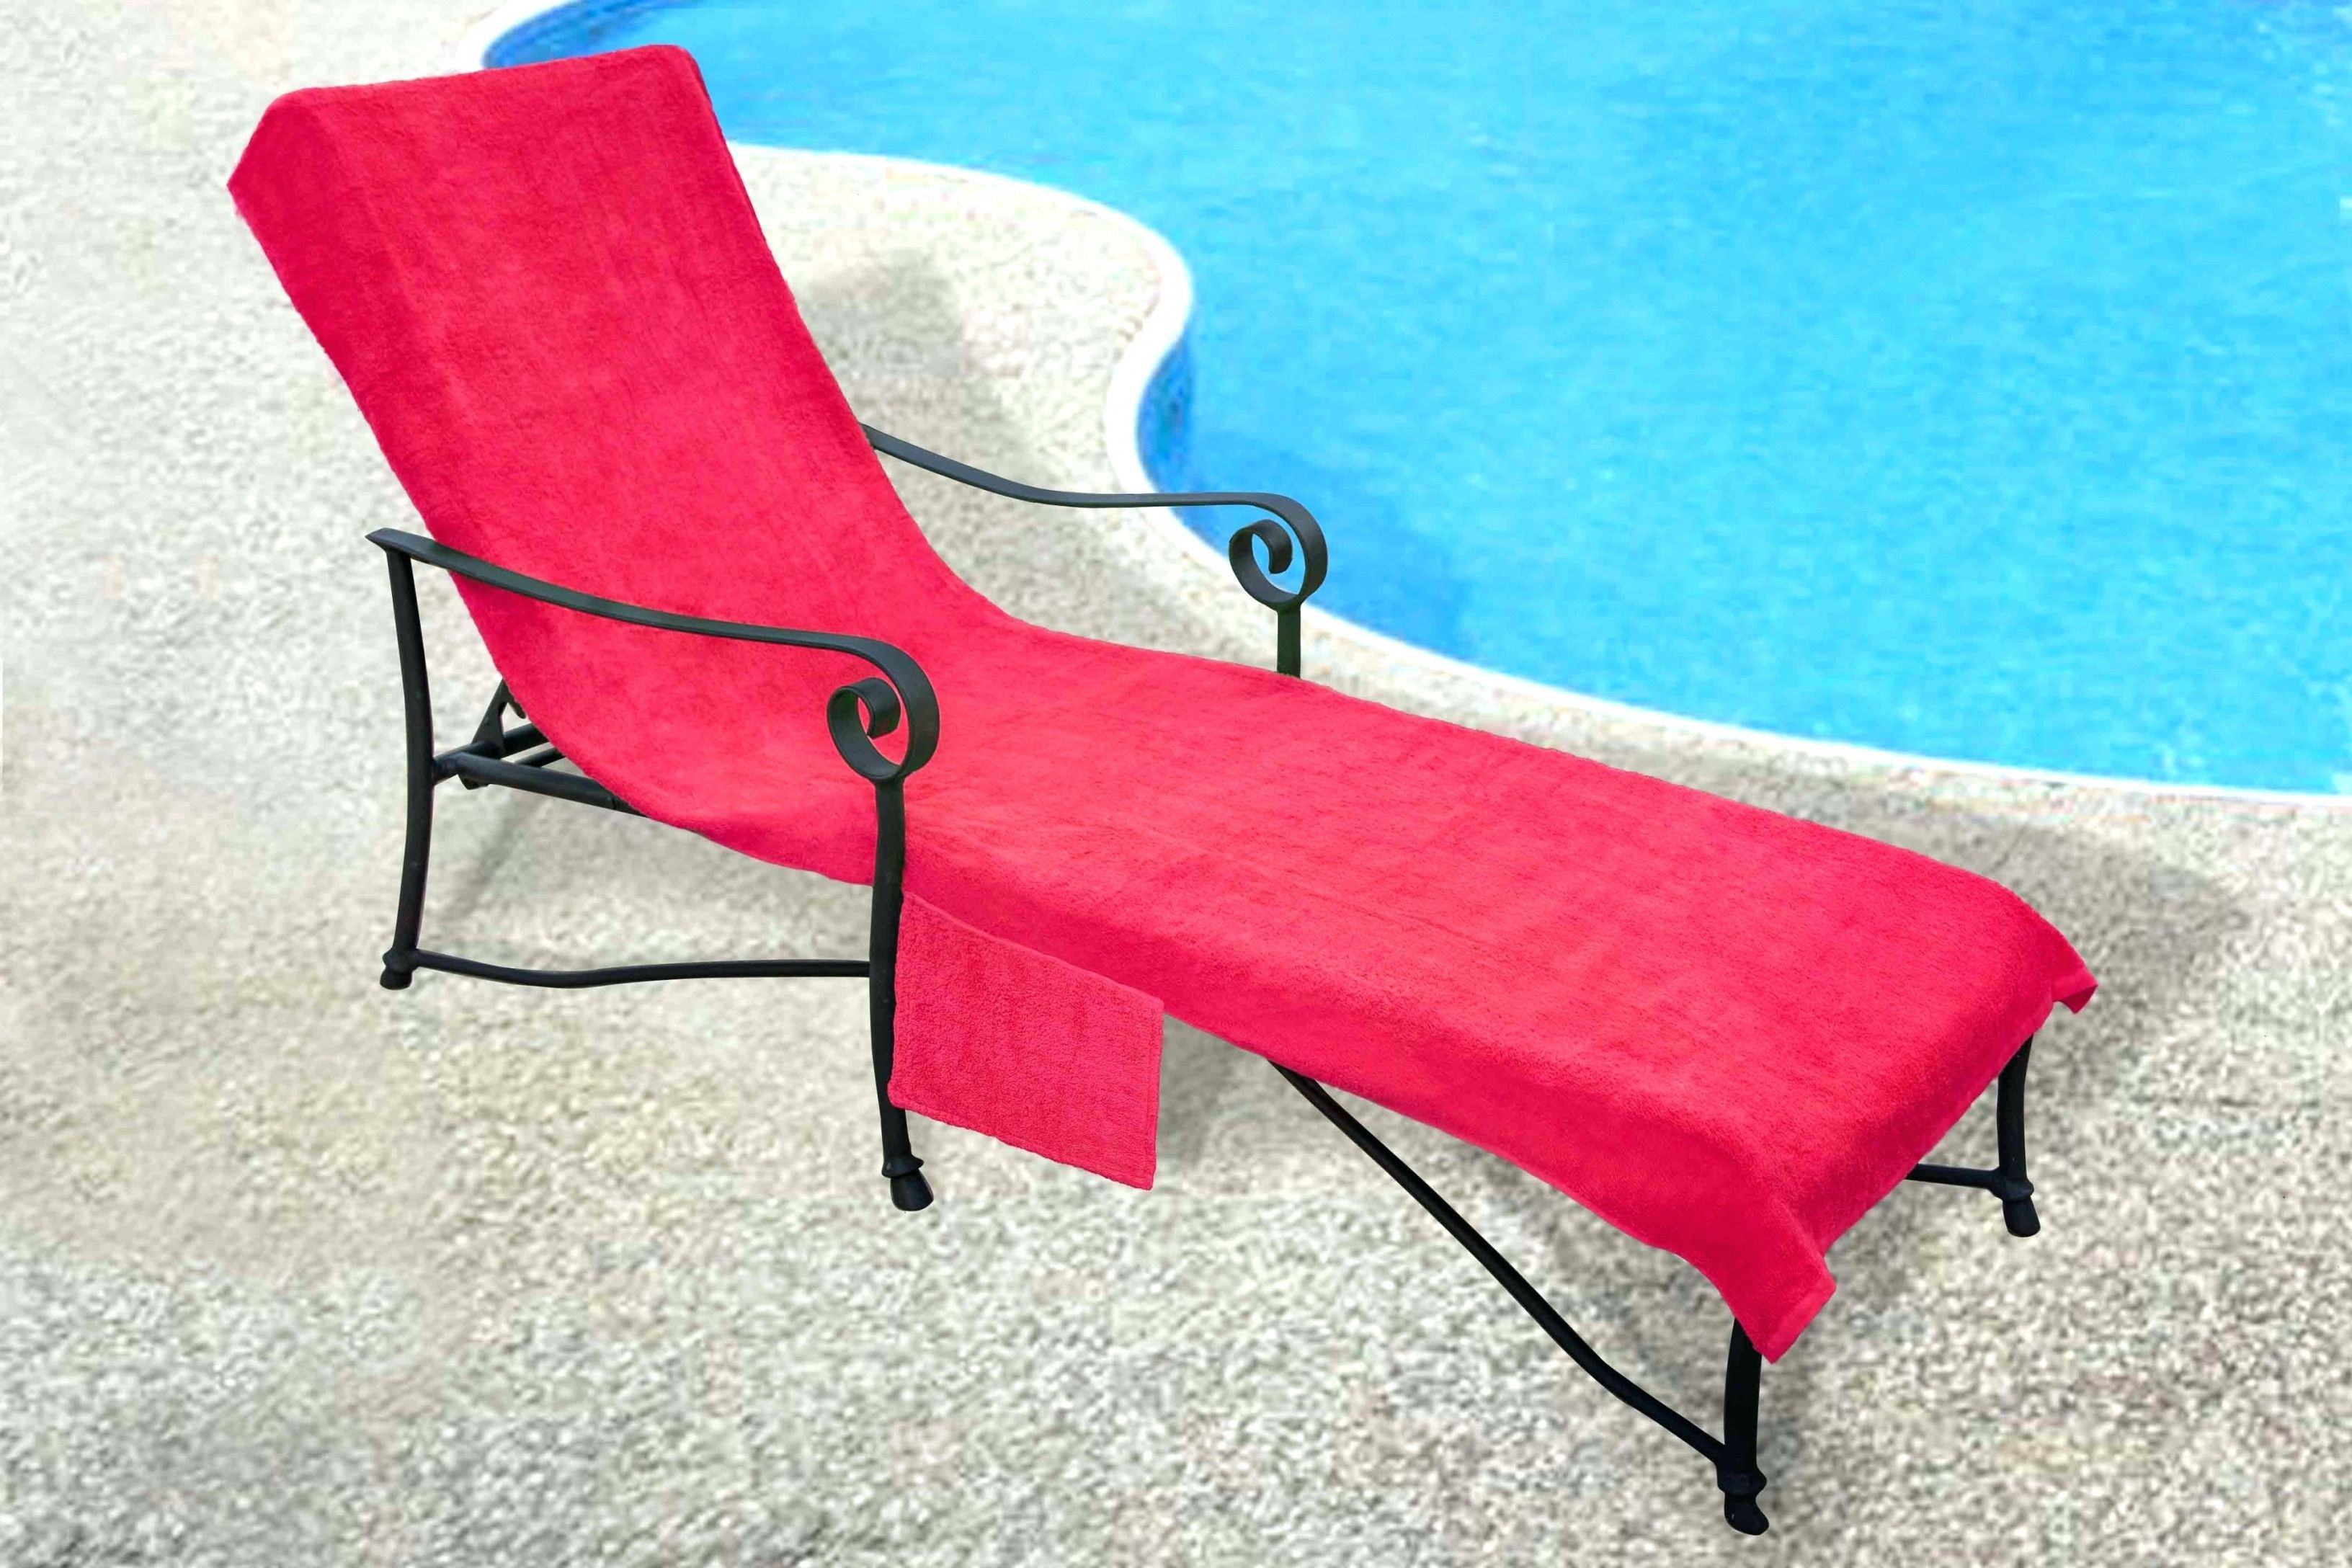 Lounge Chair Towels Chair Beach Towels Sun Lounge Chair Cover With Tote Bag Large